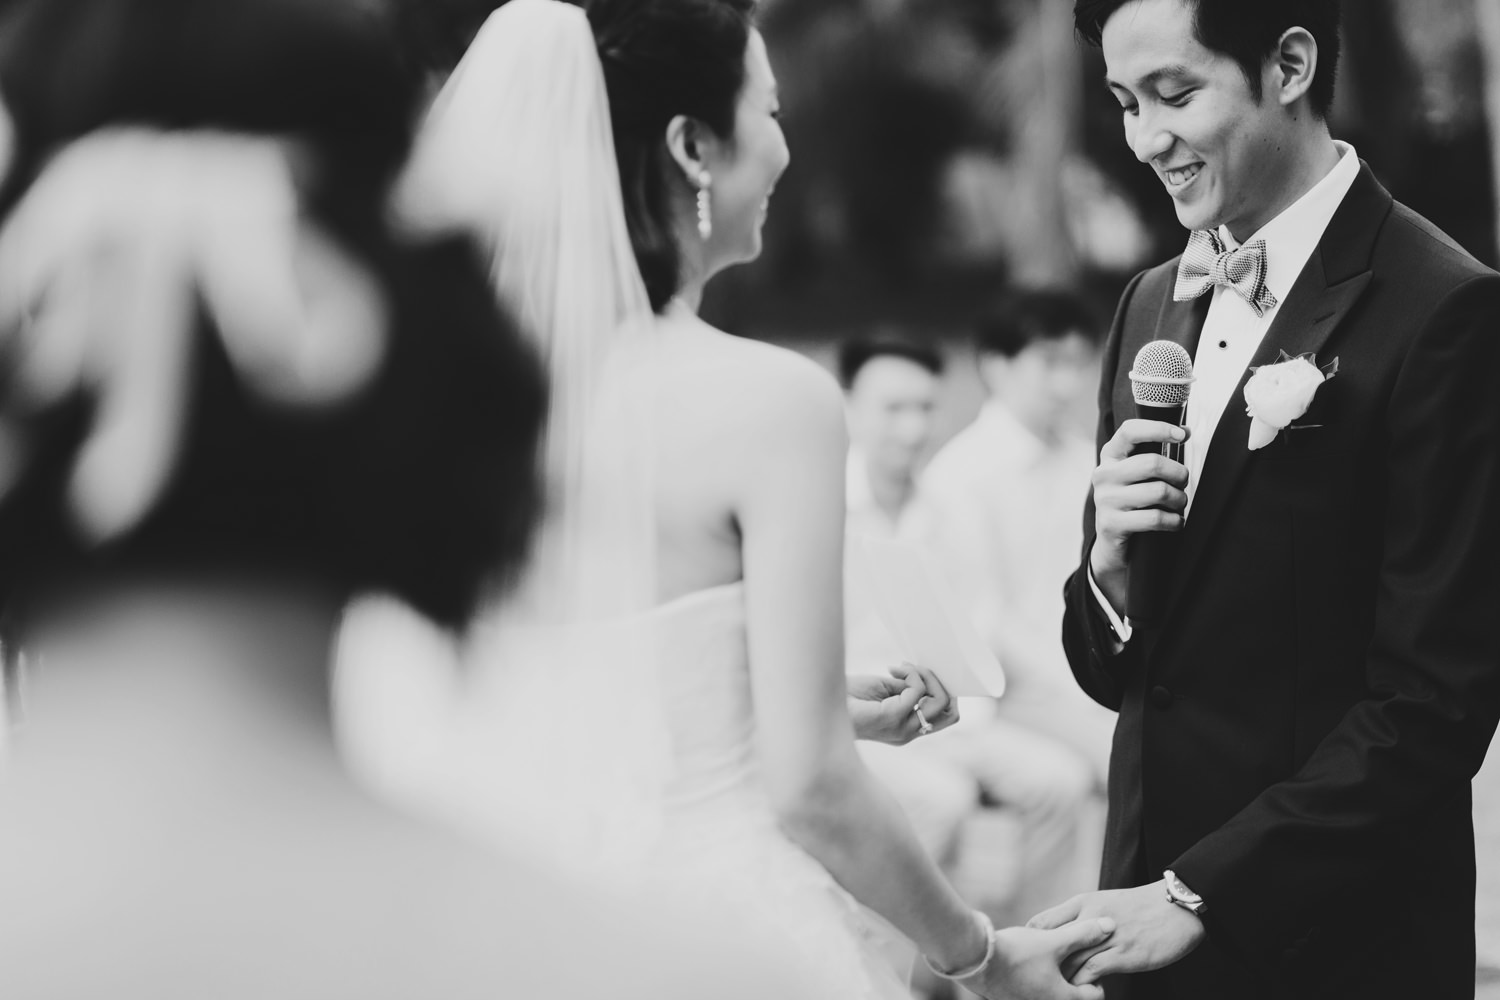 055-Melbourne_Wedding_Photographer_Jonathan_Ong_Best2015.jpg